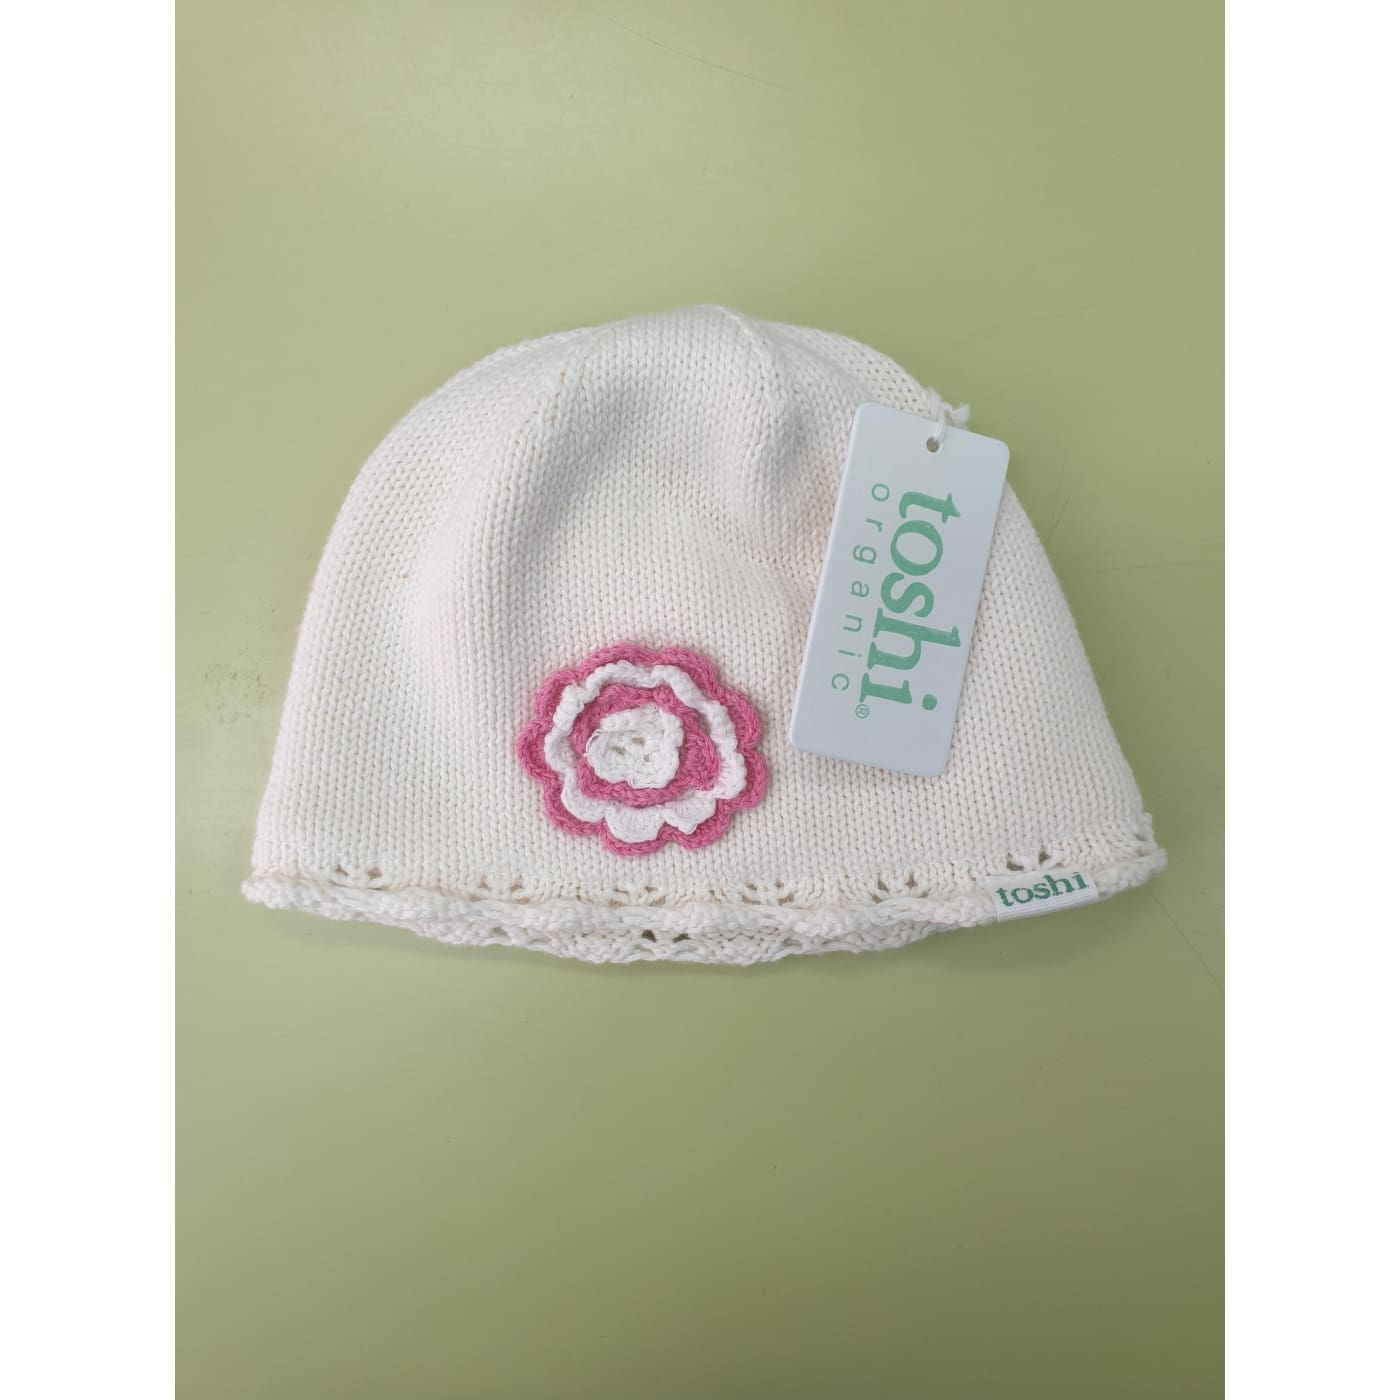 Toshi Organic Beanie - Coco Cream XS (Last One) - XS / Coco Cream - BABY & TODDLER CLOTHING - BEANIES/HATS